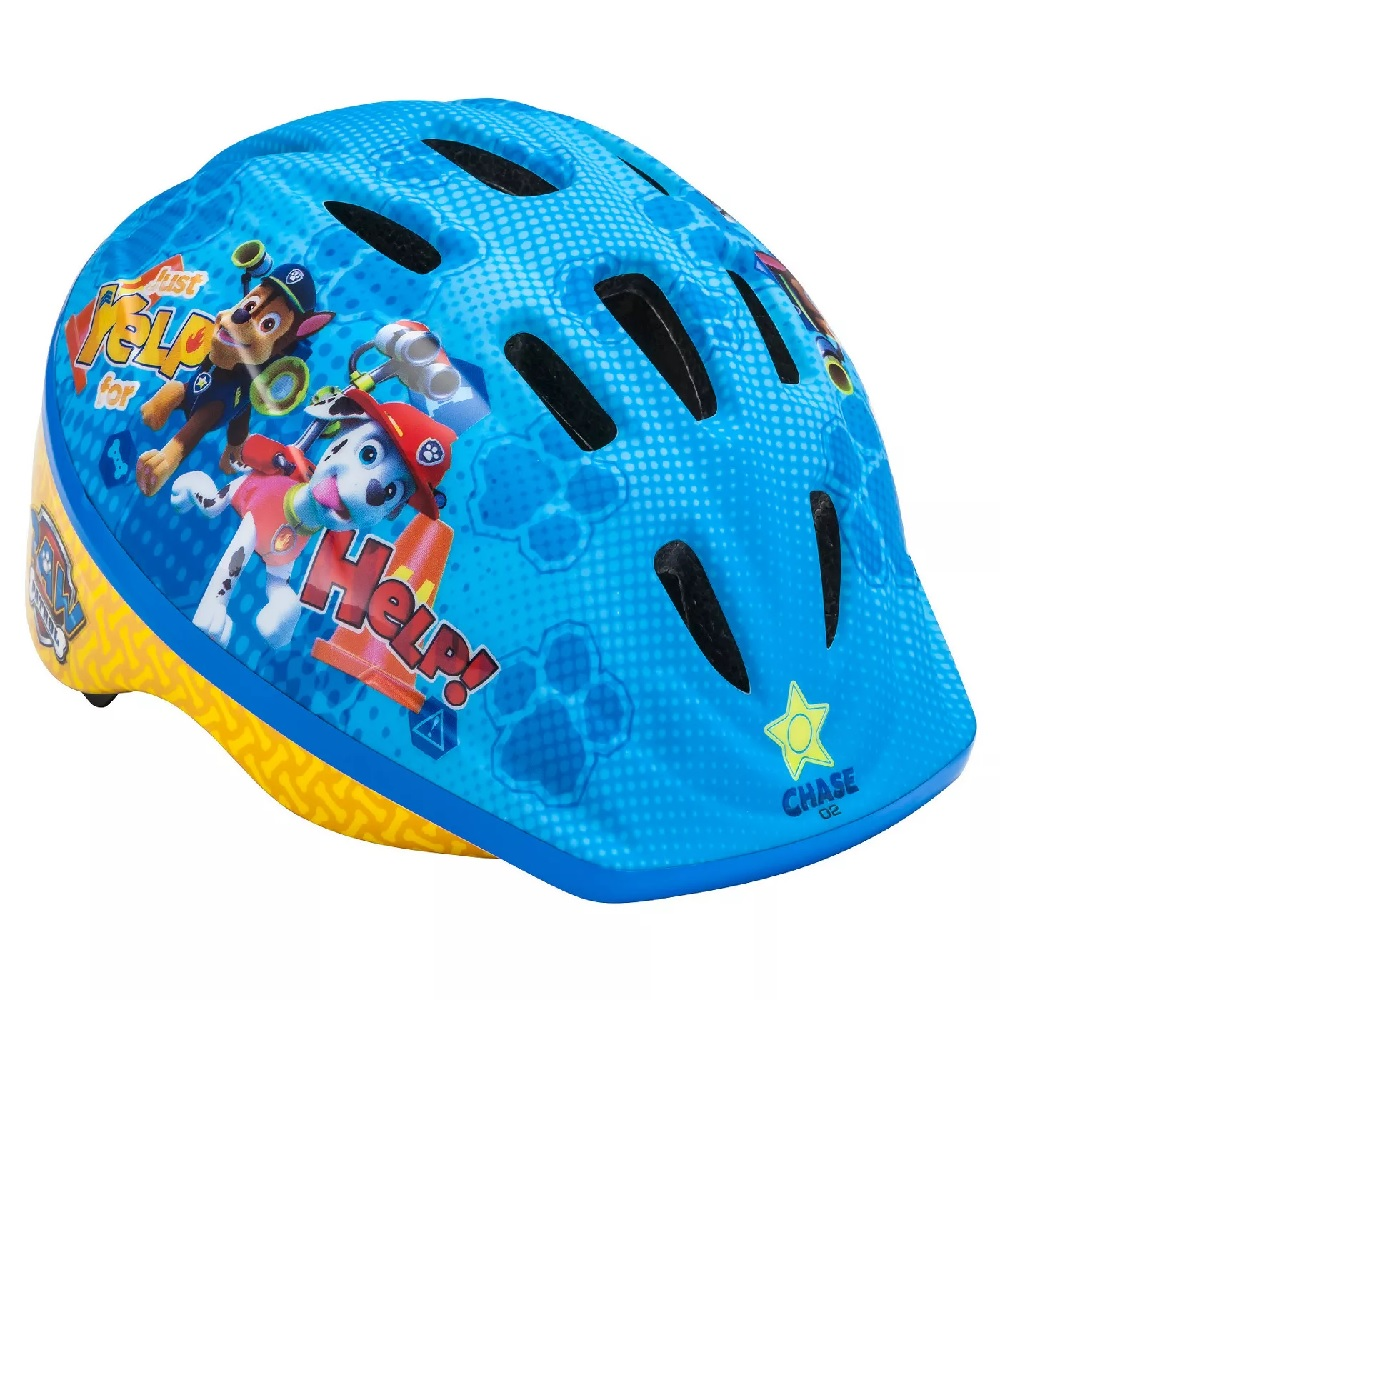 helmets & protective gear image